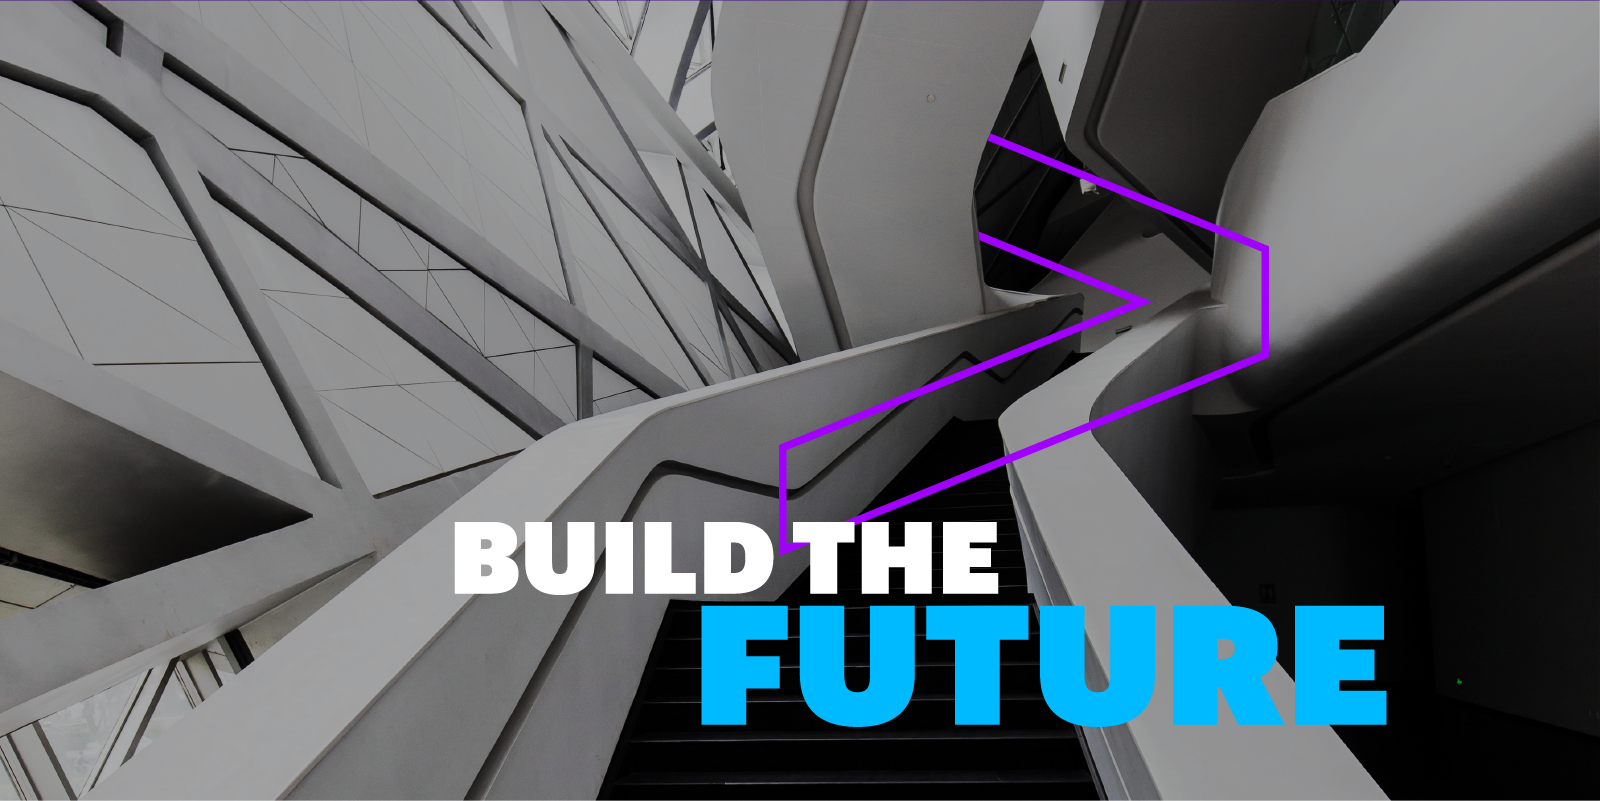 Build the future